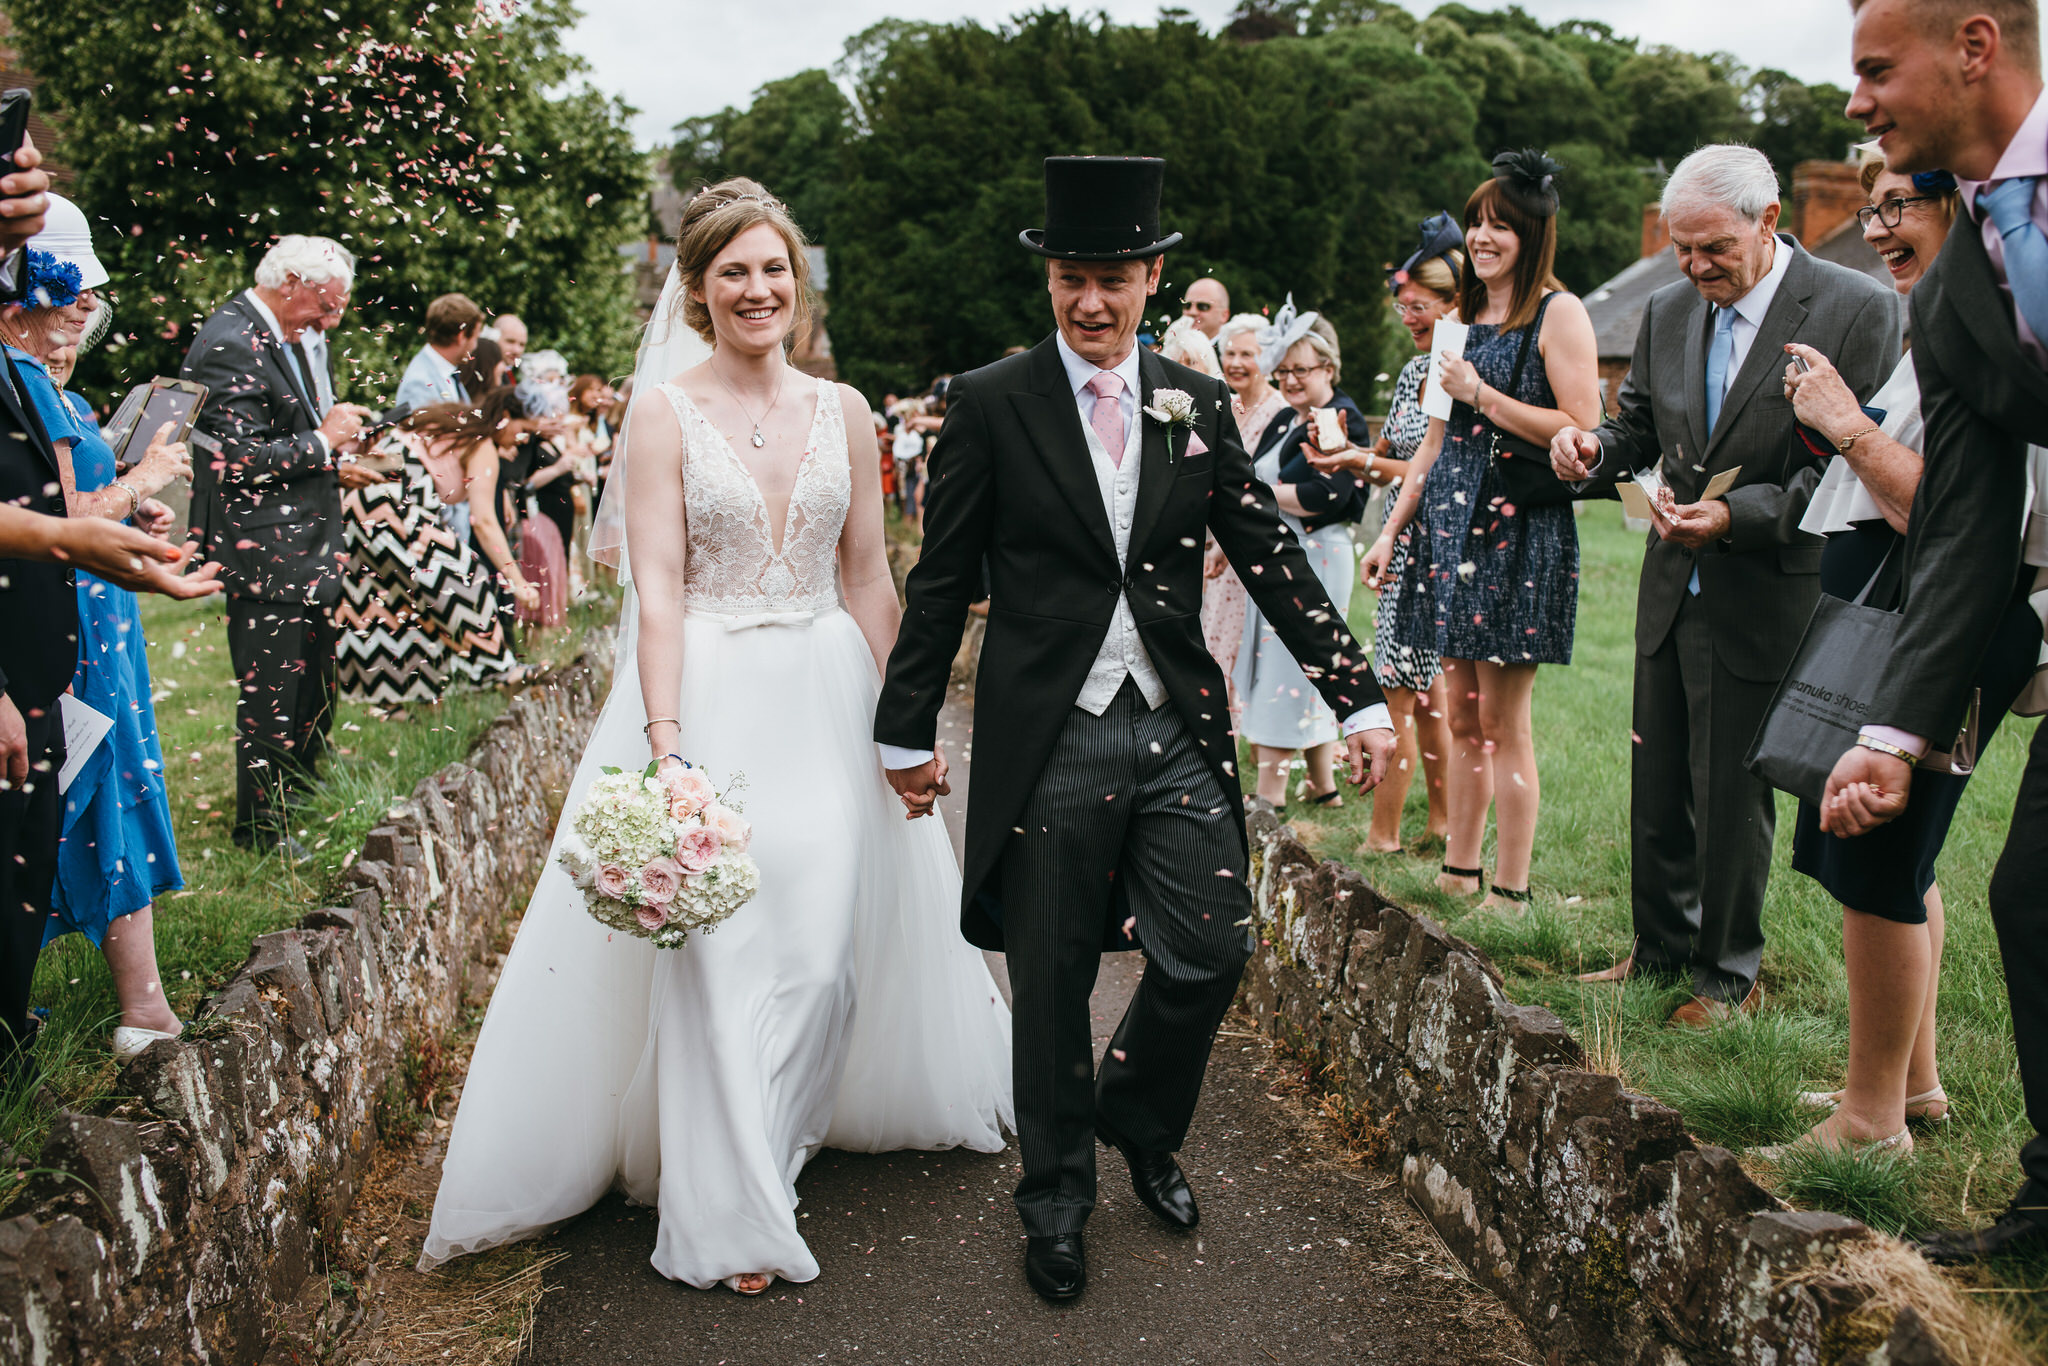 Dunster church wedding photographer